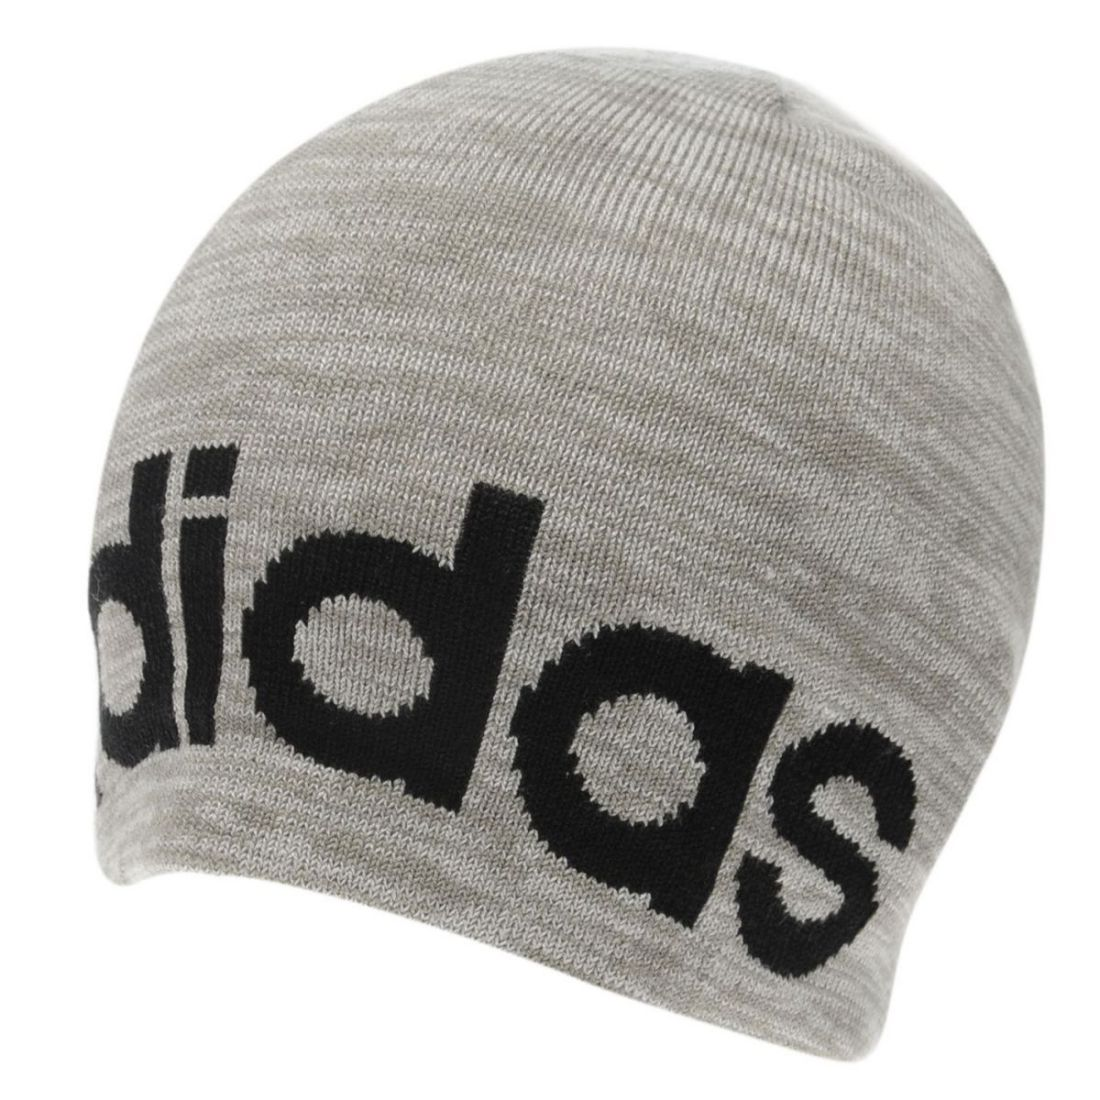 992683293fe adidas Mens Knit Beanie Warm Knitted